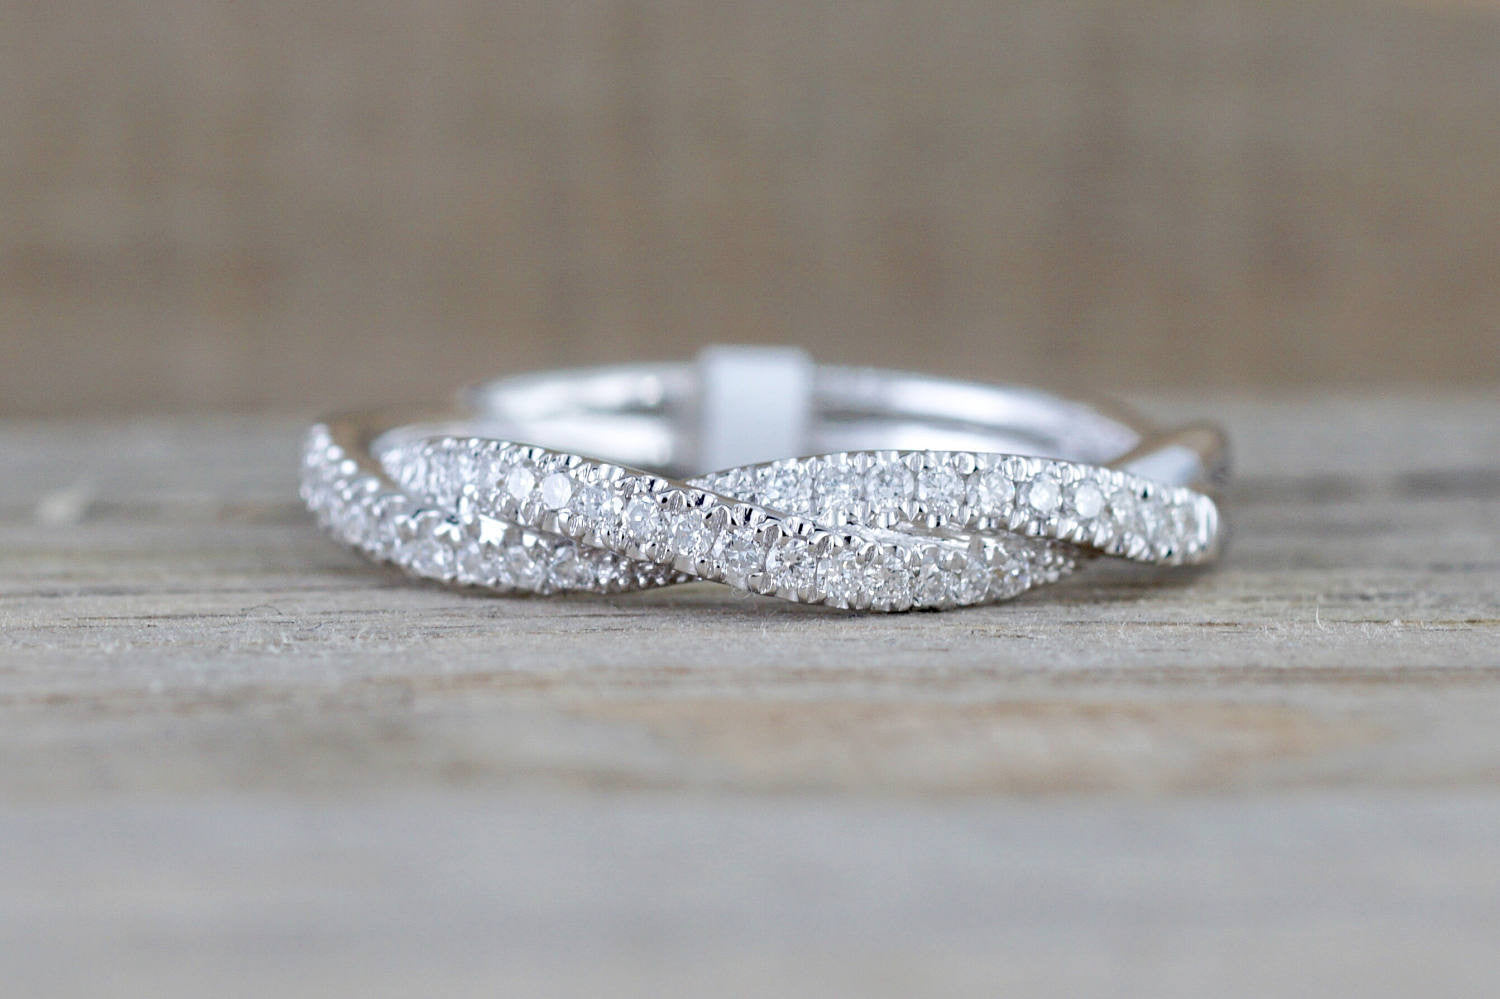 14k White Gold Diamond Pave Rope Twist Curve Stackable Ring Band - Brilliant Facets